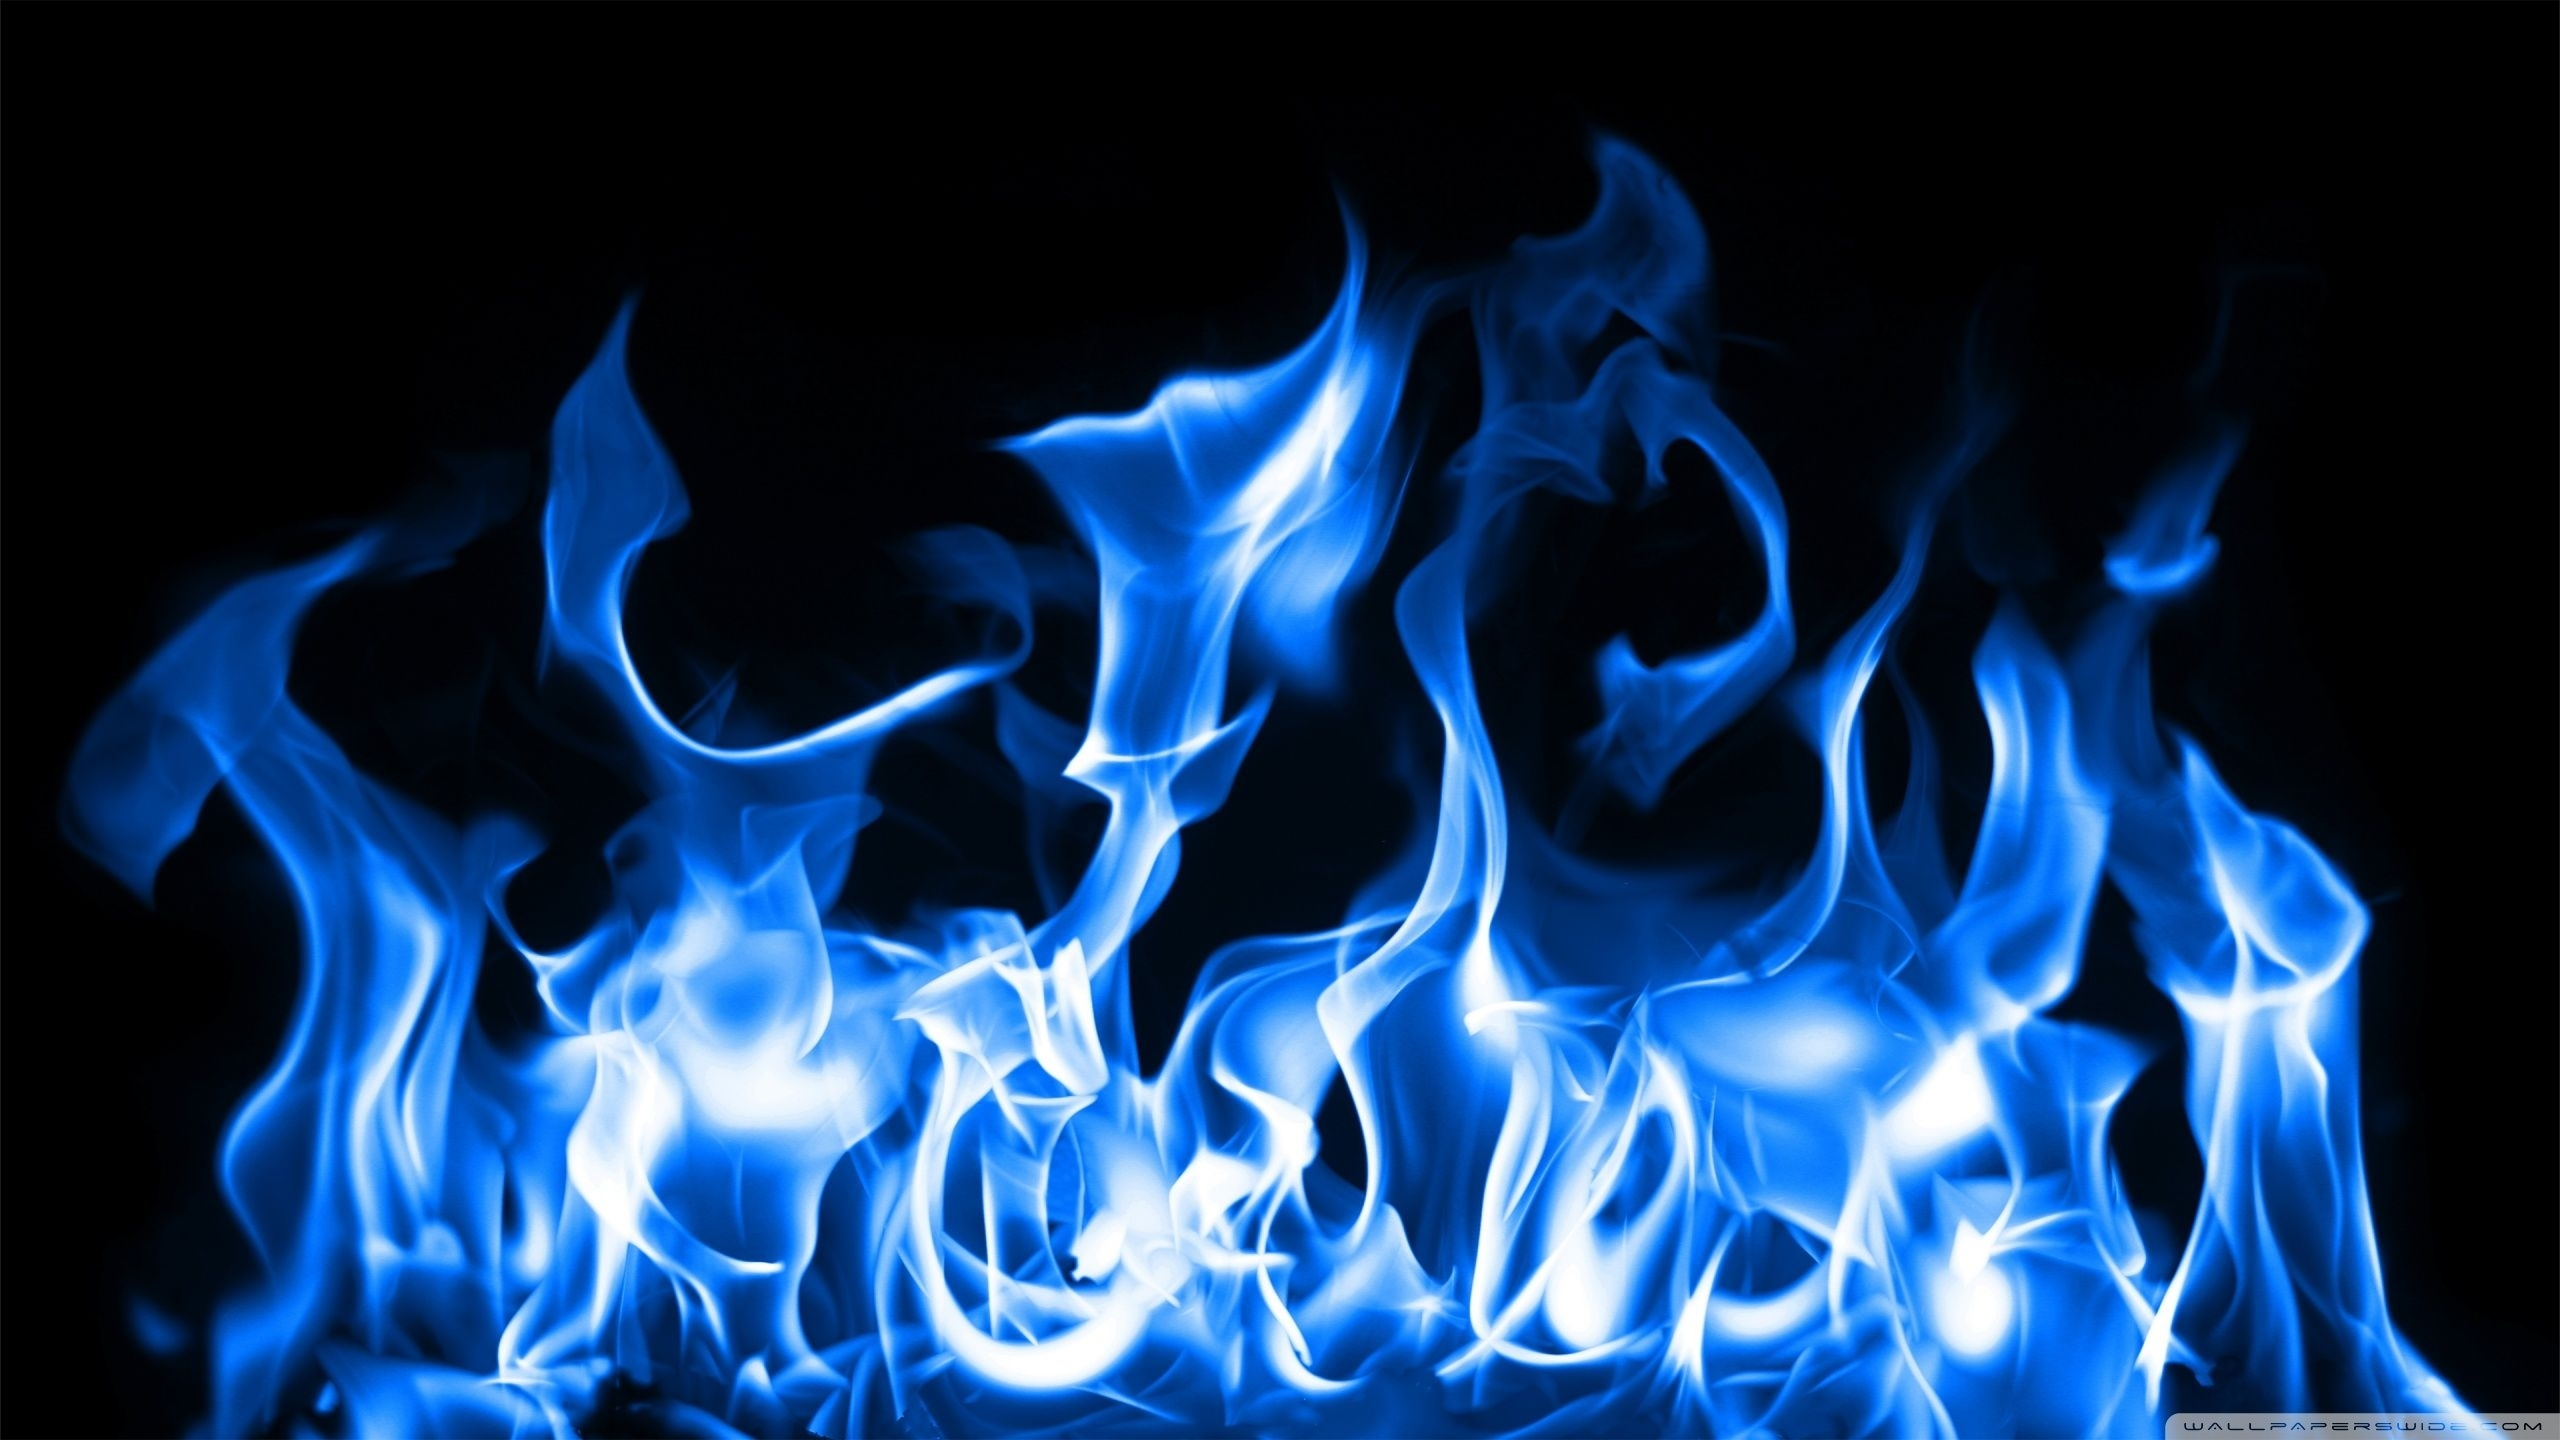 10 Latest Cool Dark Blue Fire Backgrounds FULL HD 1920×1080 For PC Desktop